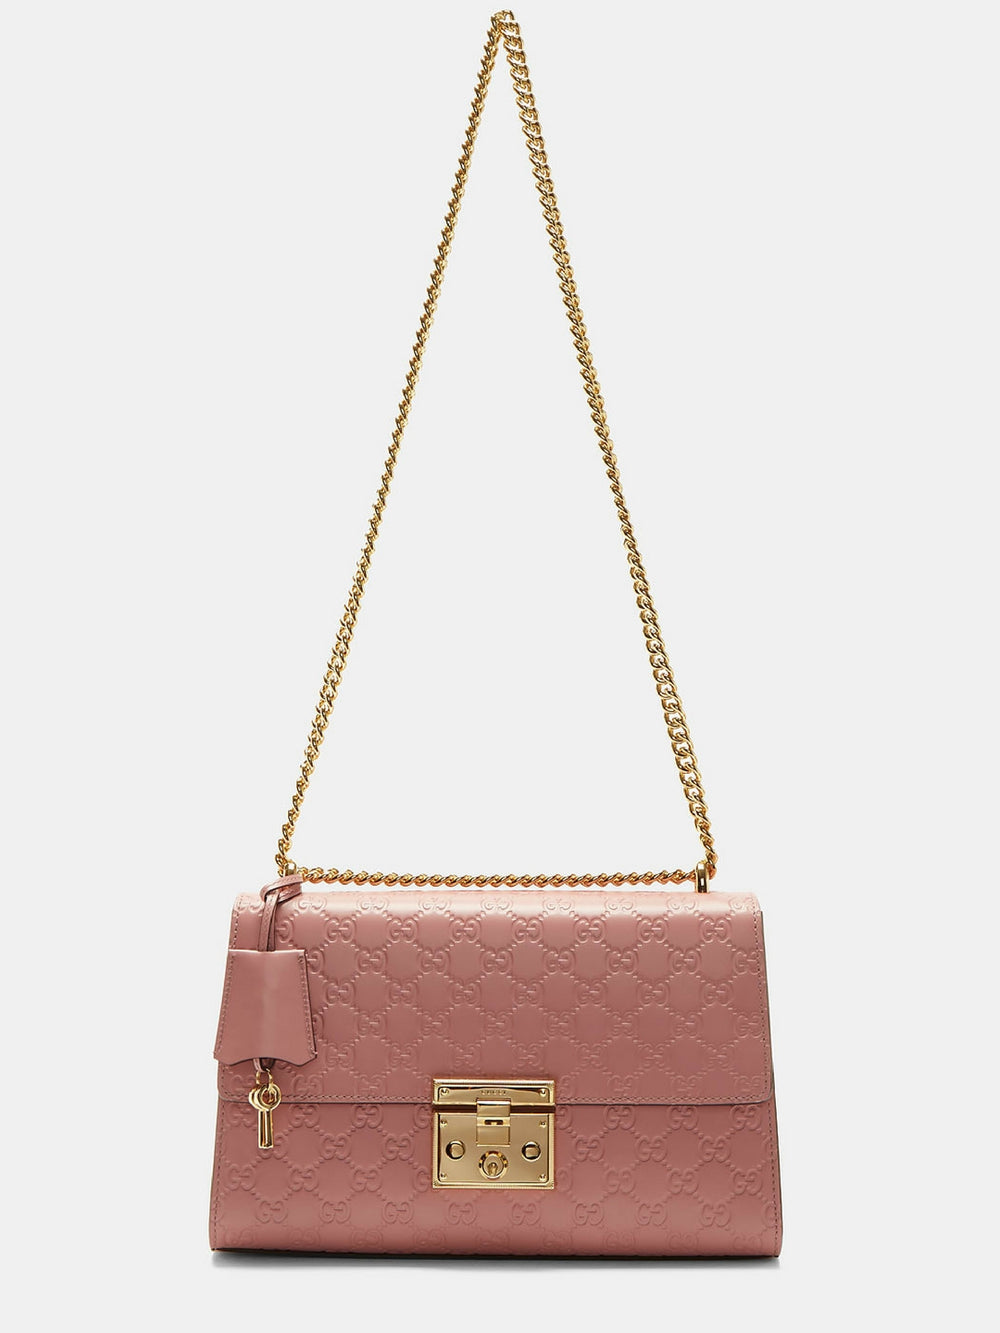 gucci-padlock-signature-gg-monogram-shoulder-bag-pink